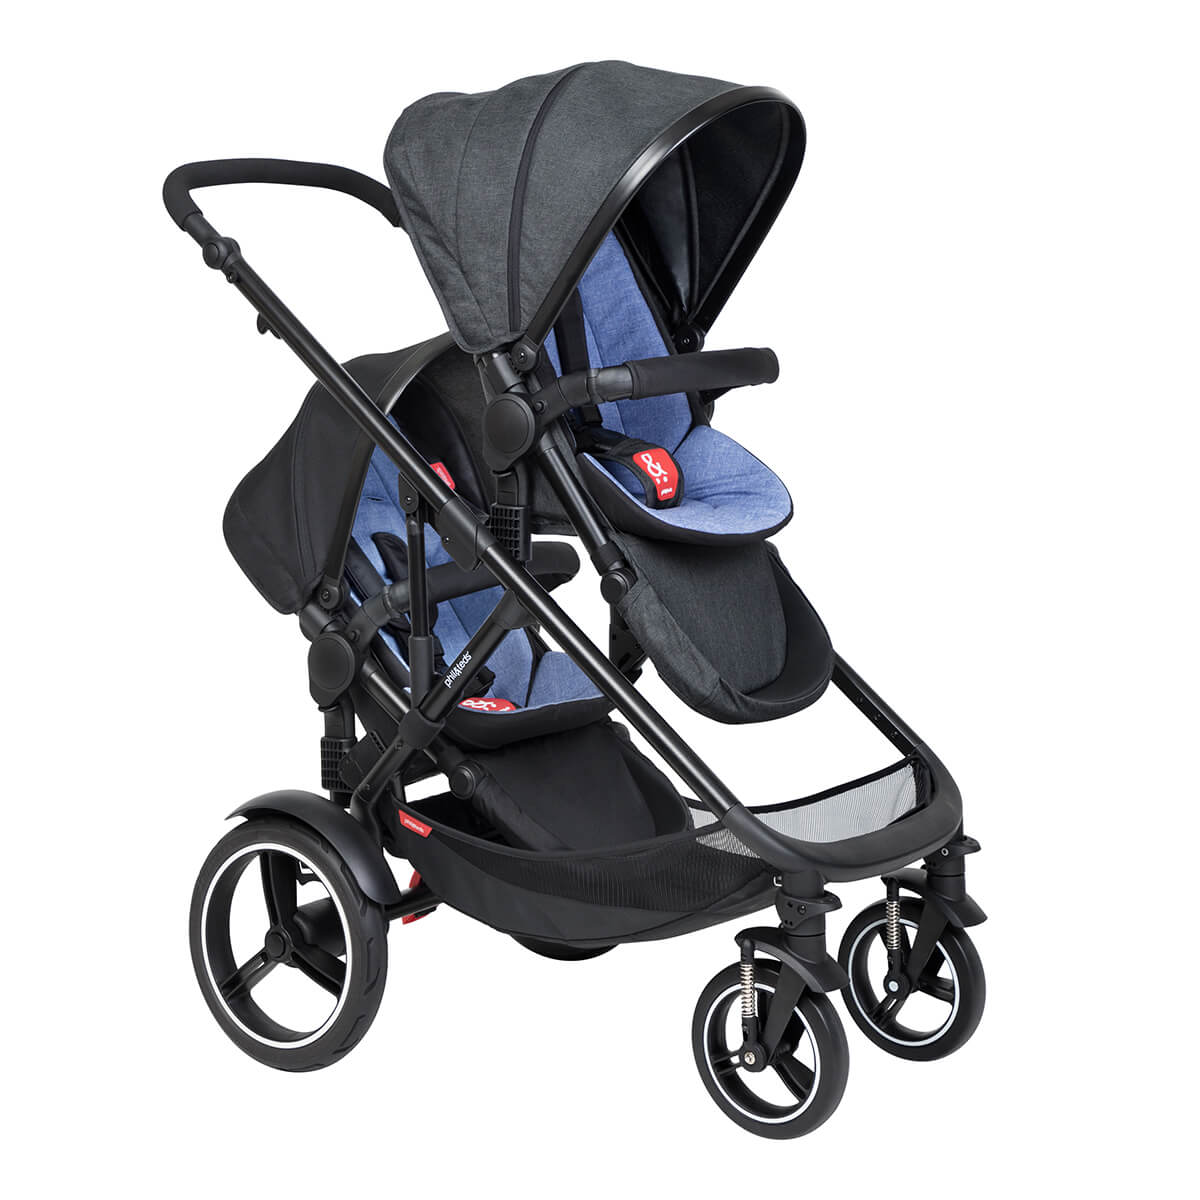 https://cdn.accentuate.io/4509529571416/19272668348504/philteds-voyager-inline-buggy-with-double-kit-in-rear-in-sky-blue-colour-v1626484745796.jpg?1200x1200